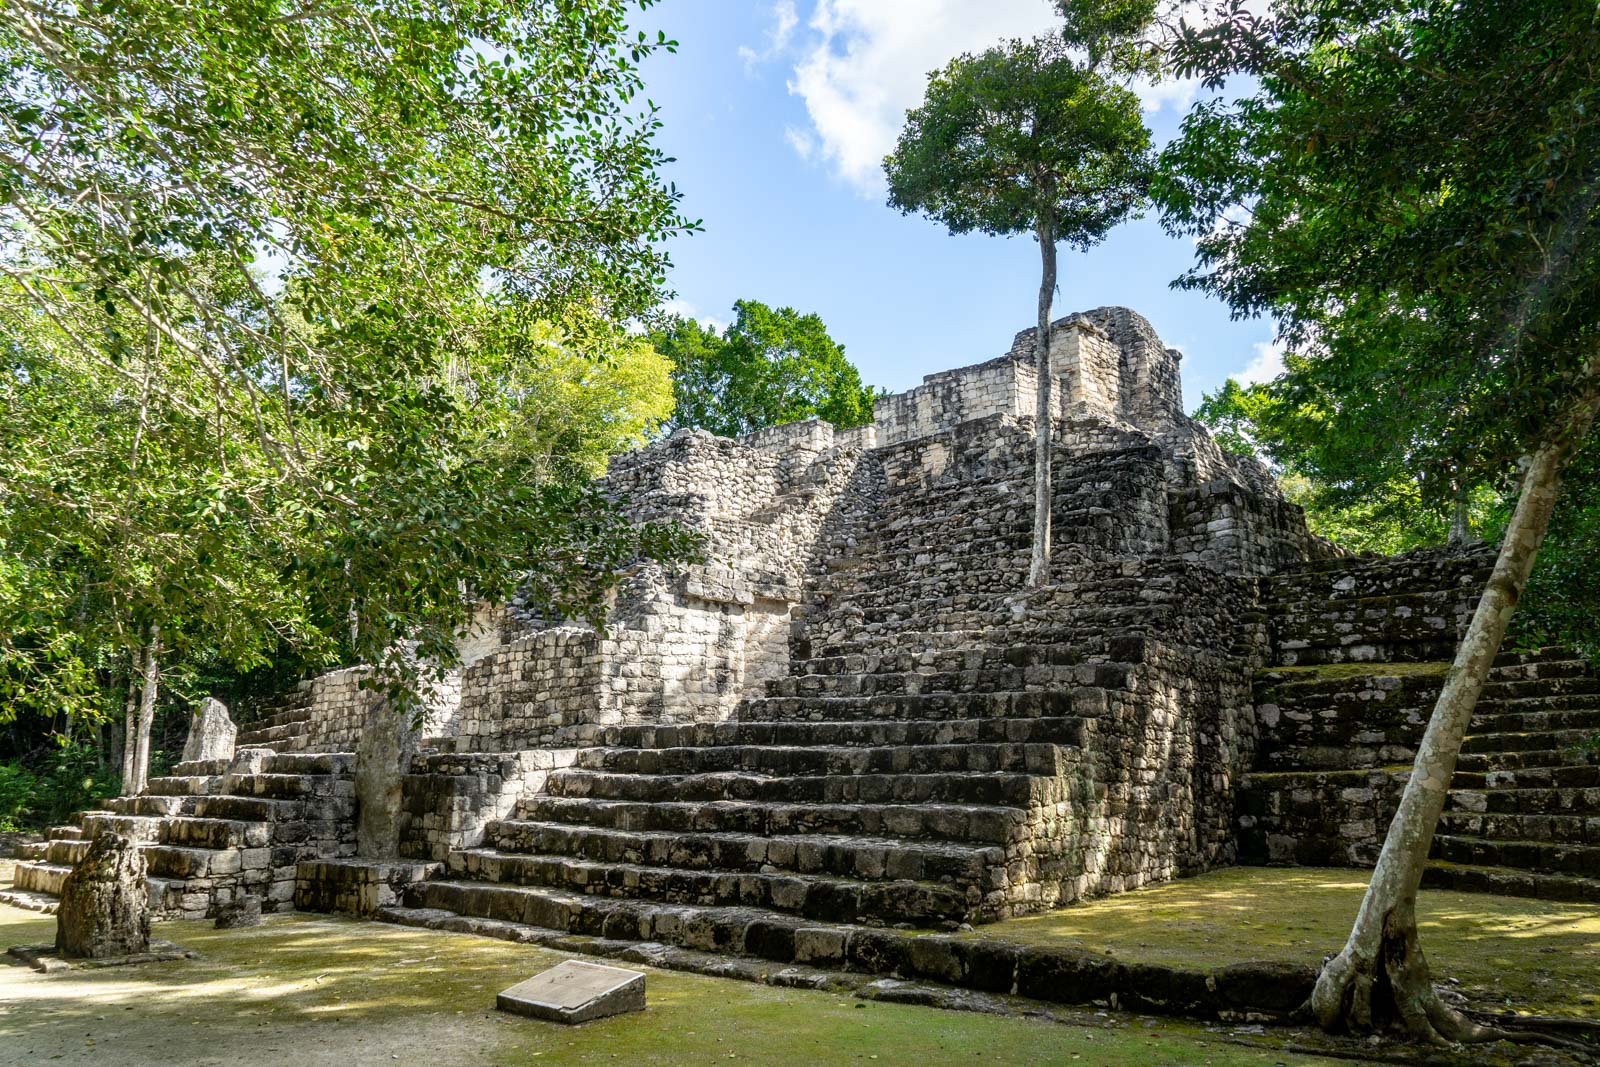 Mayan ruins of Calakmul, Mexico